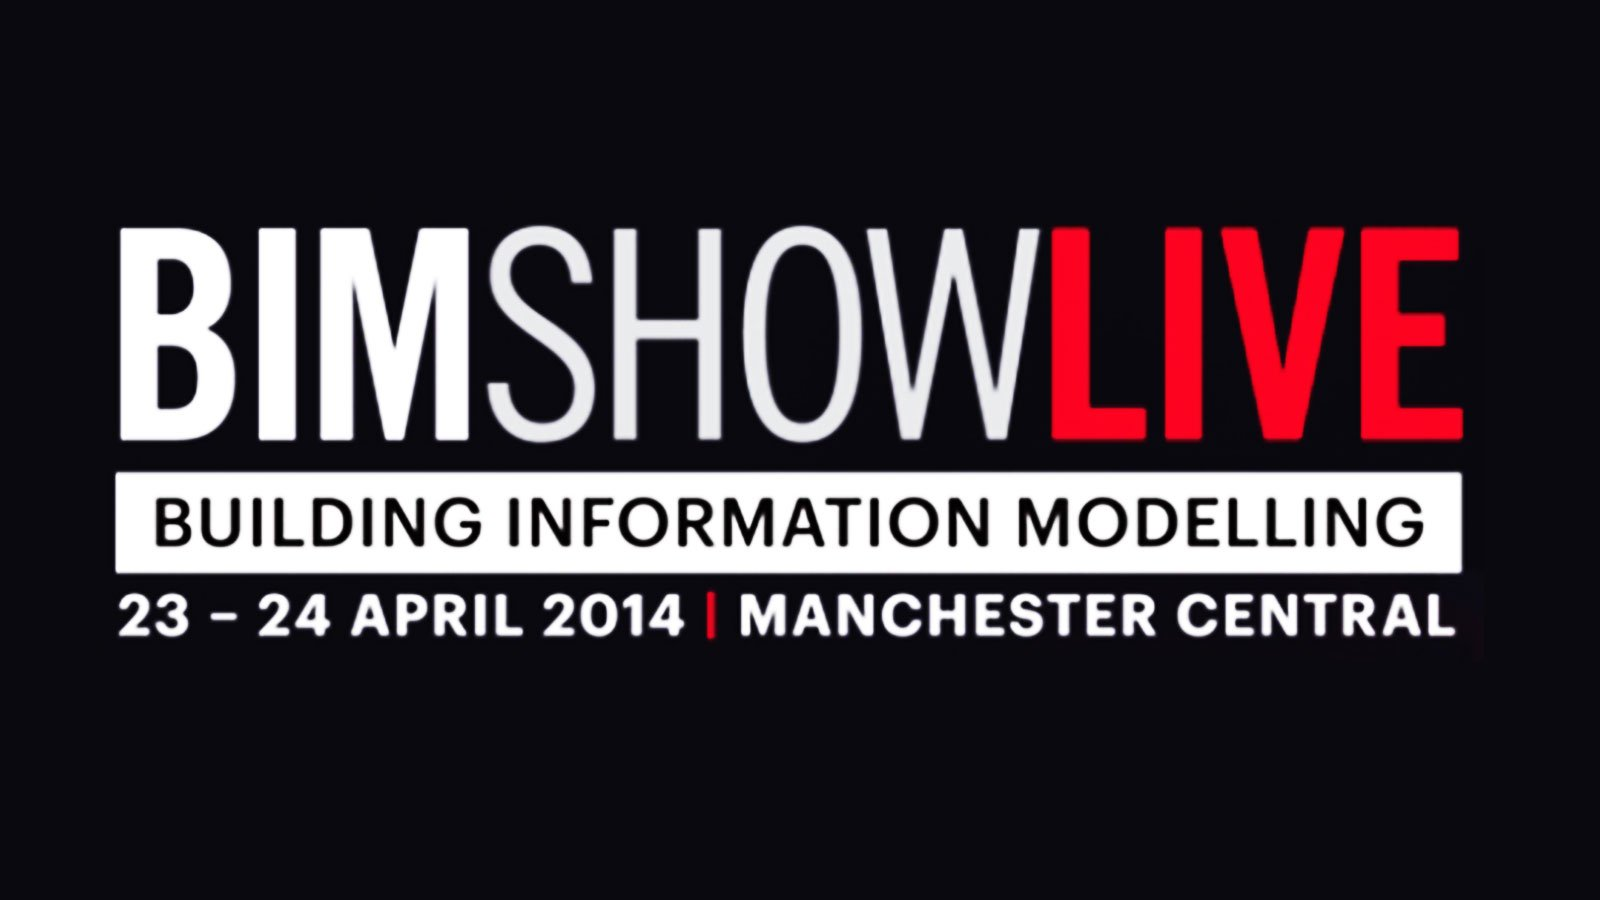 Asite's Golden Appearance at the BIM Show Live